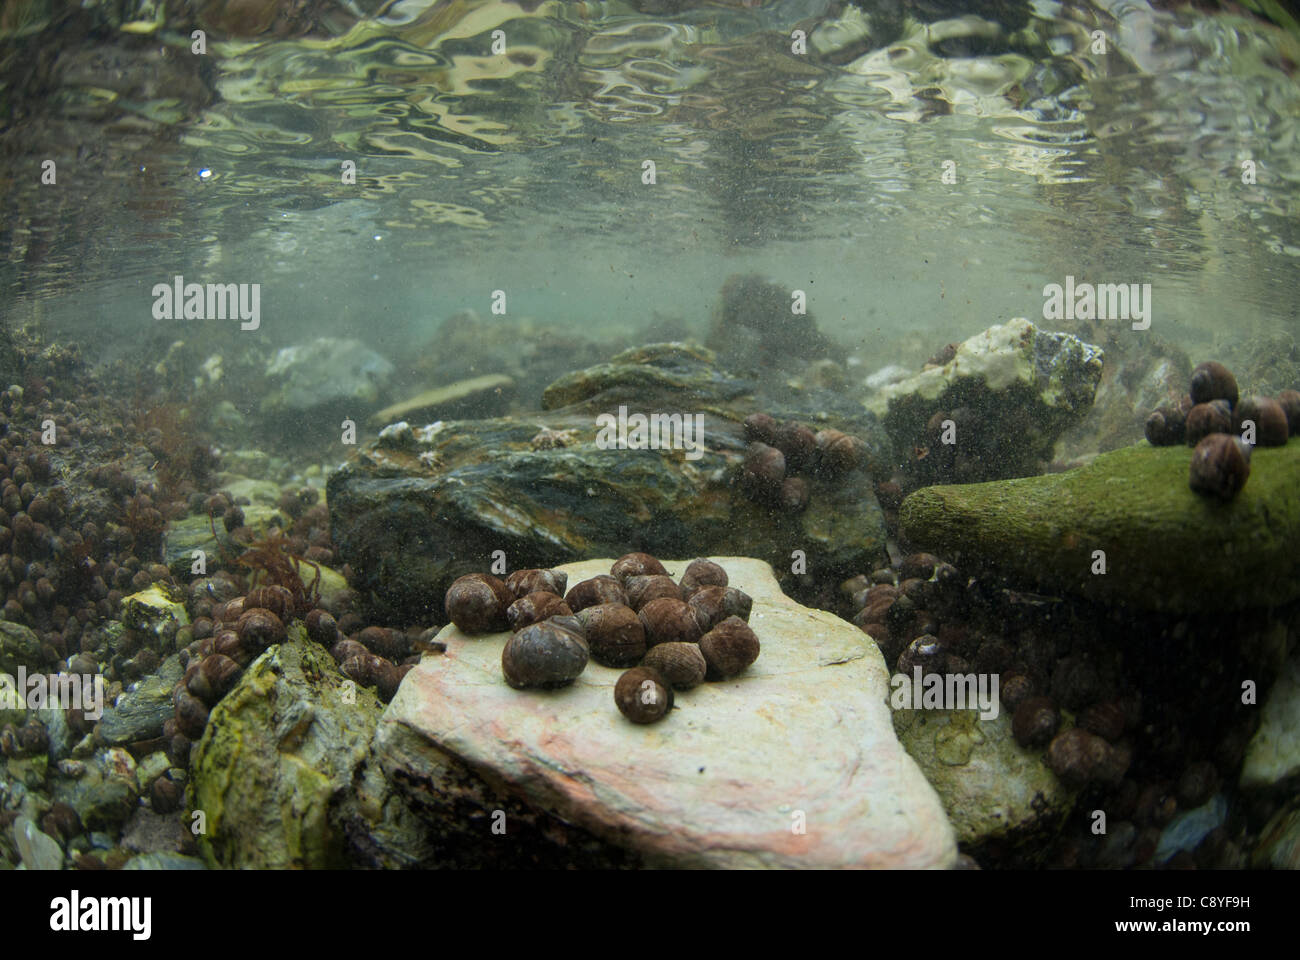 the view from under a rockpool - Stock Image